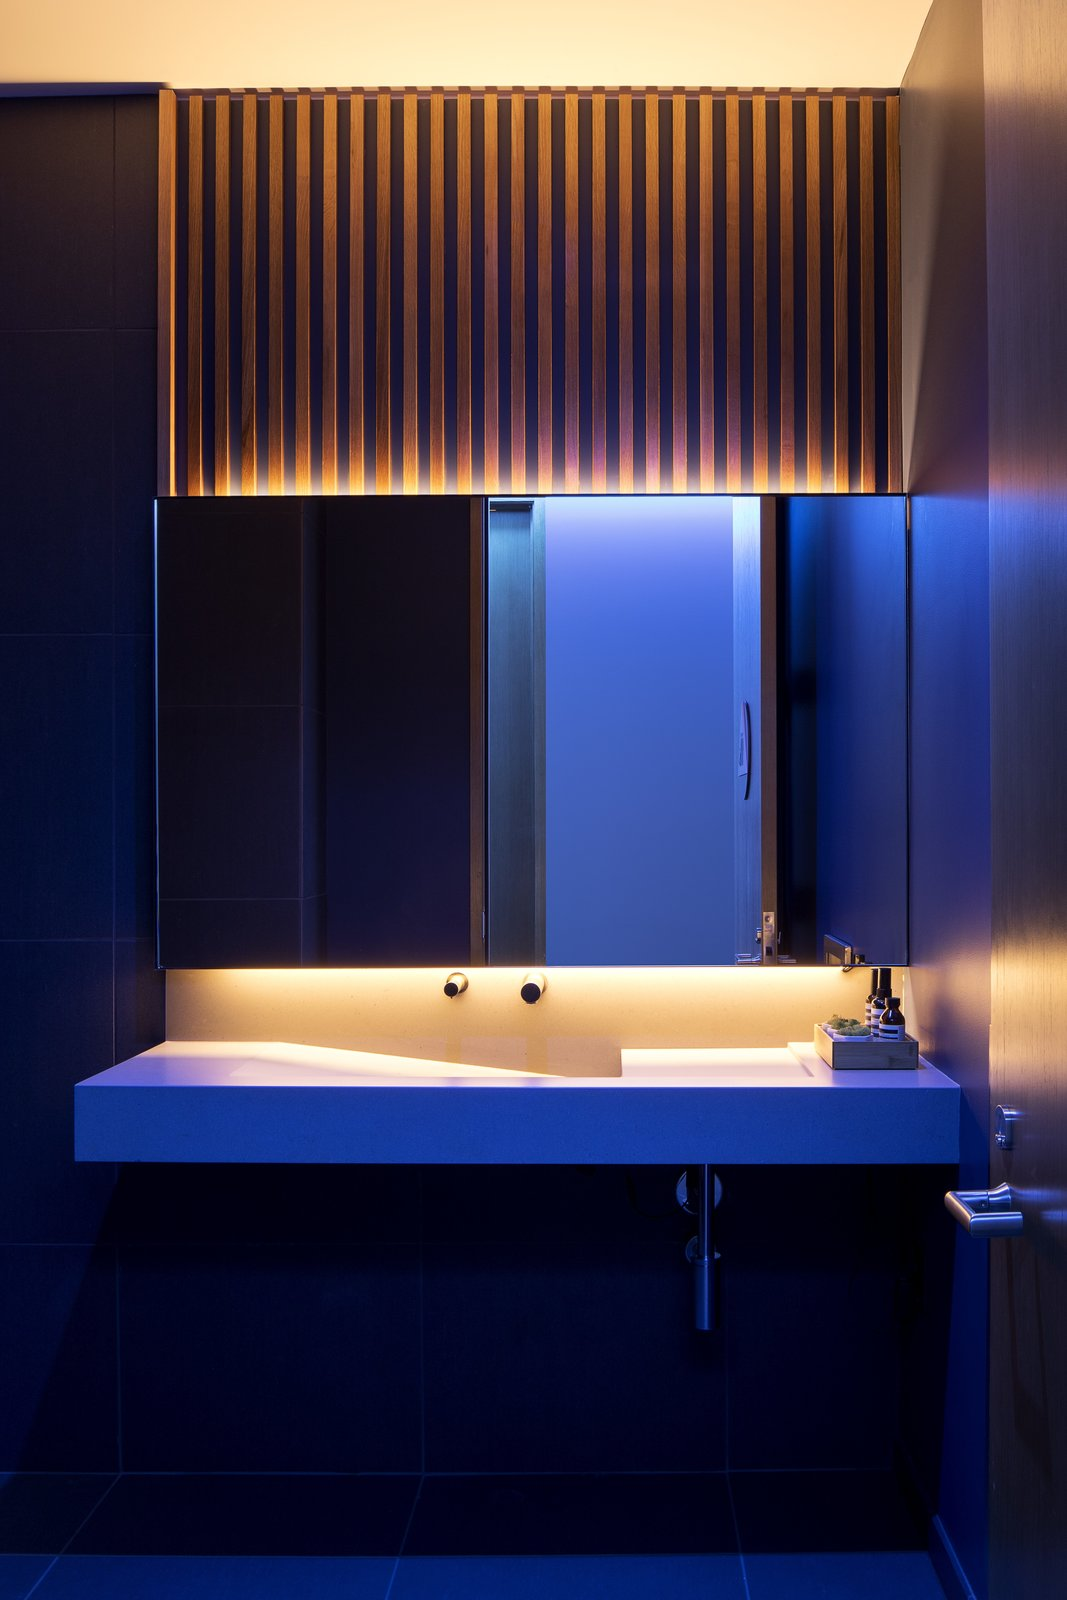 Bath Room, Undermount Sink, Accent Lighting, and Recessed Lighting  Photo 11 of 12 in A Healthcare Start-Up Combines Modern Design With Top-Notch Technology and Care